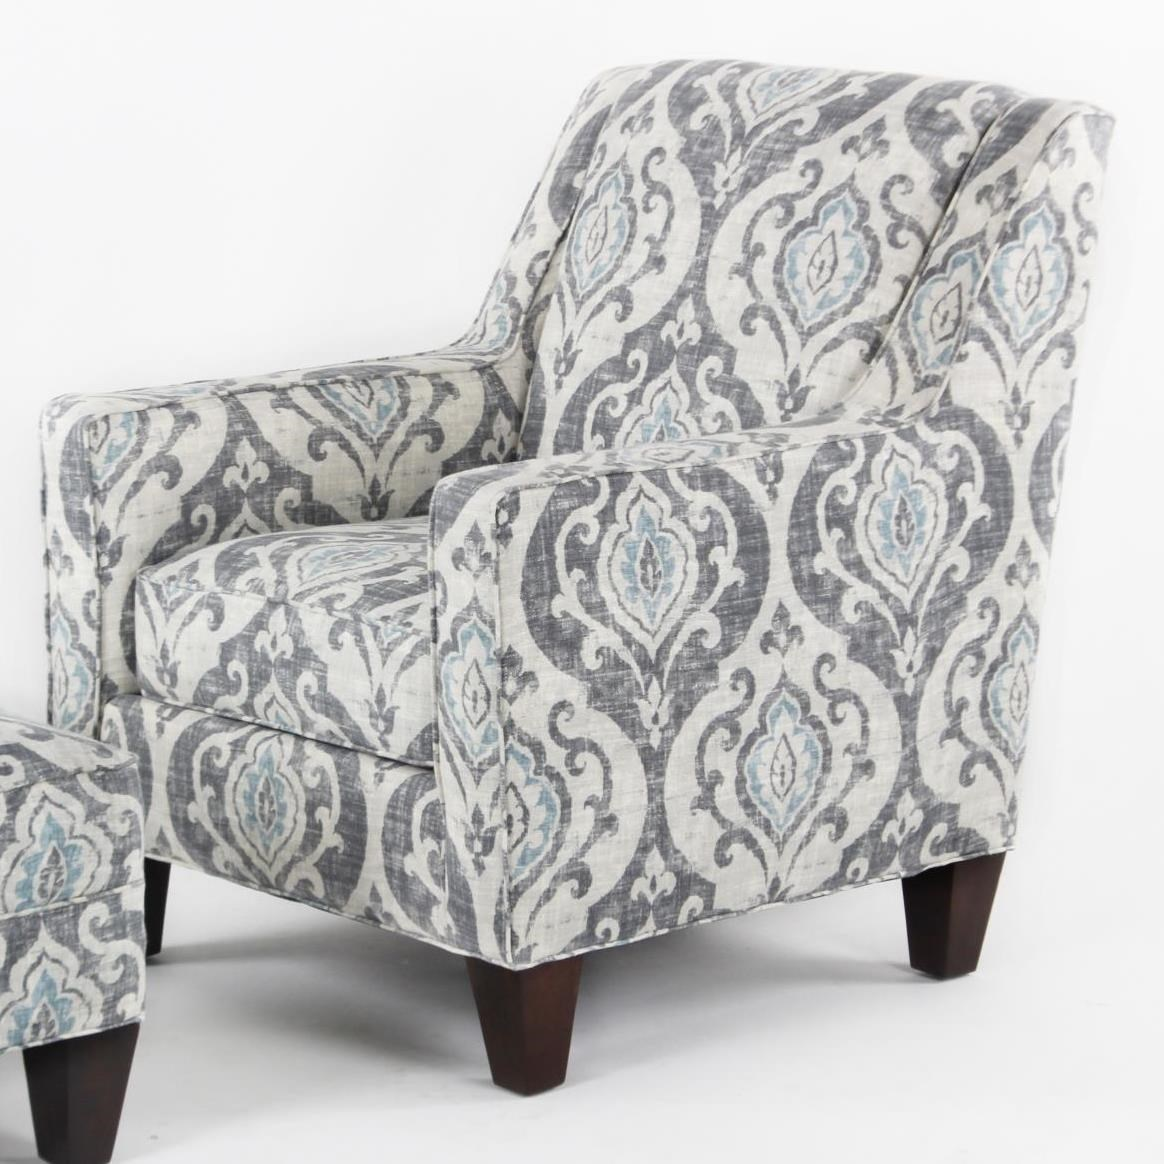 CMI Classic Chair Accents Casual Club Chair With Track Arms   Hudsonu0027s  Furniture   Upholstered Chairs